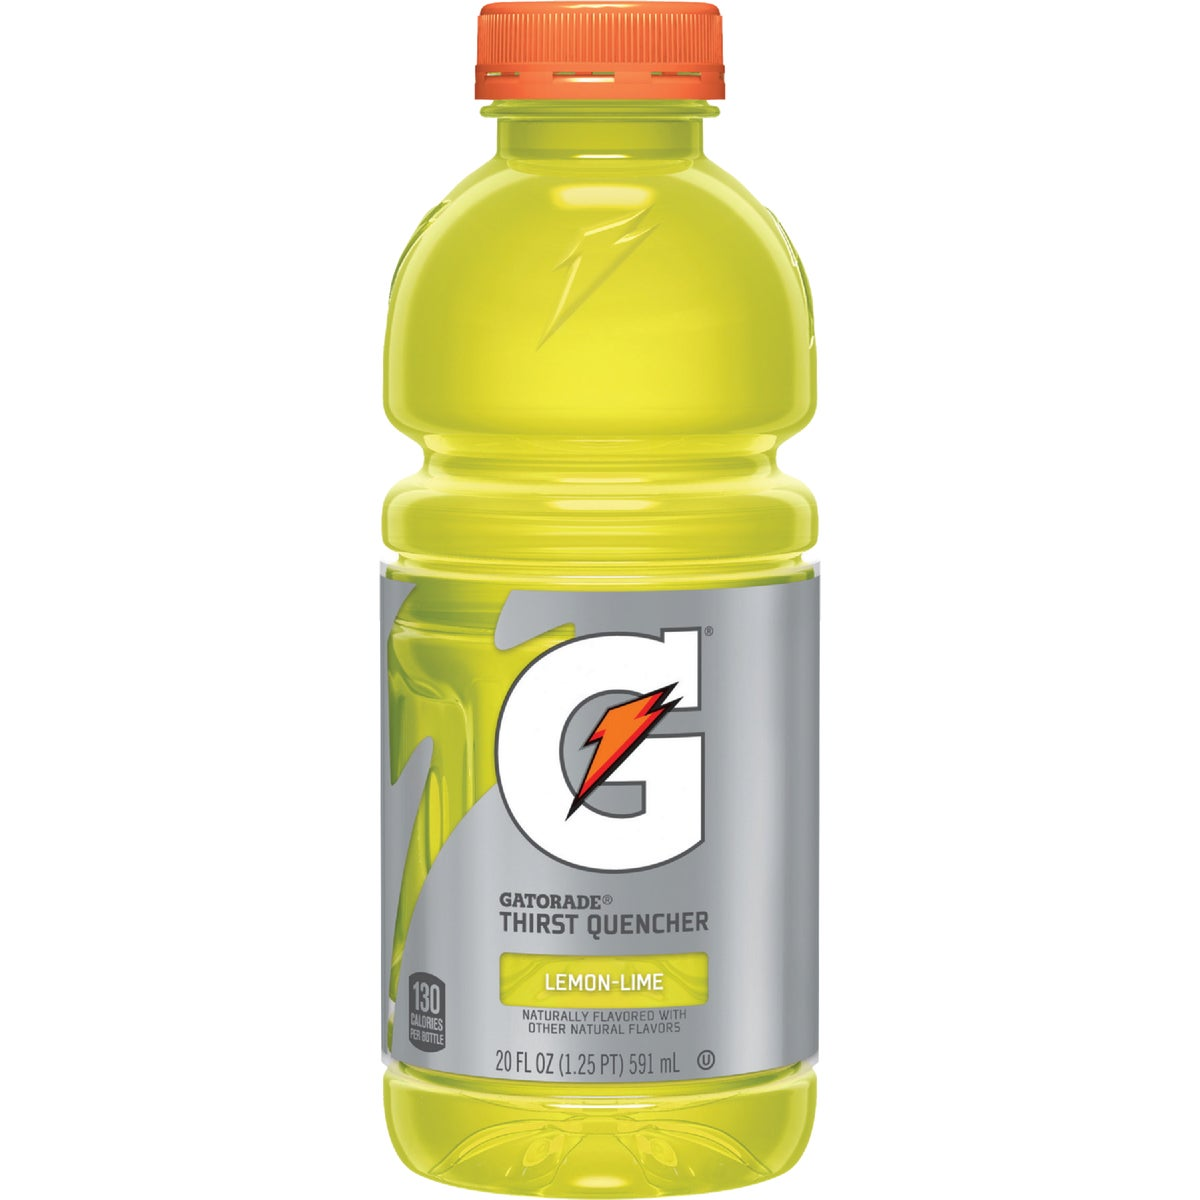 20OZ LEM/LIM GATORADE - 32868 by Quaker  Gatorade